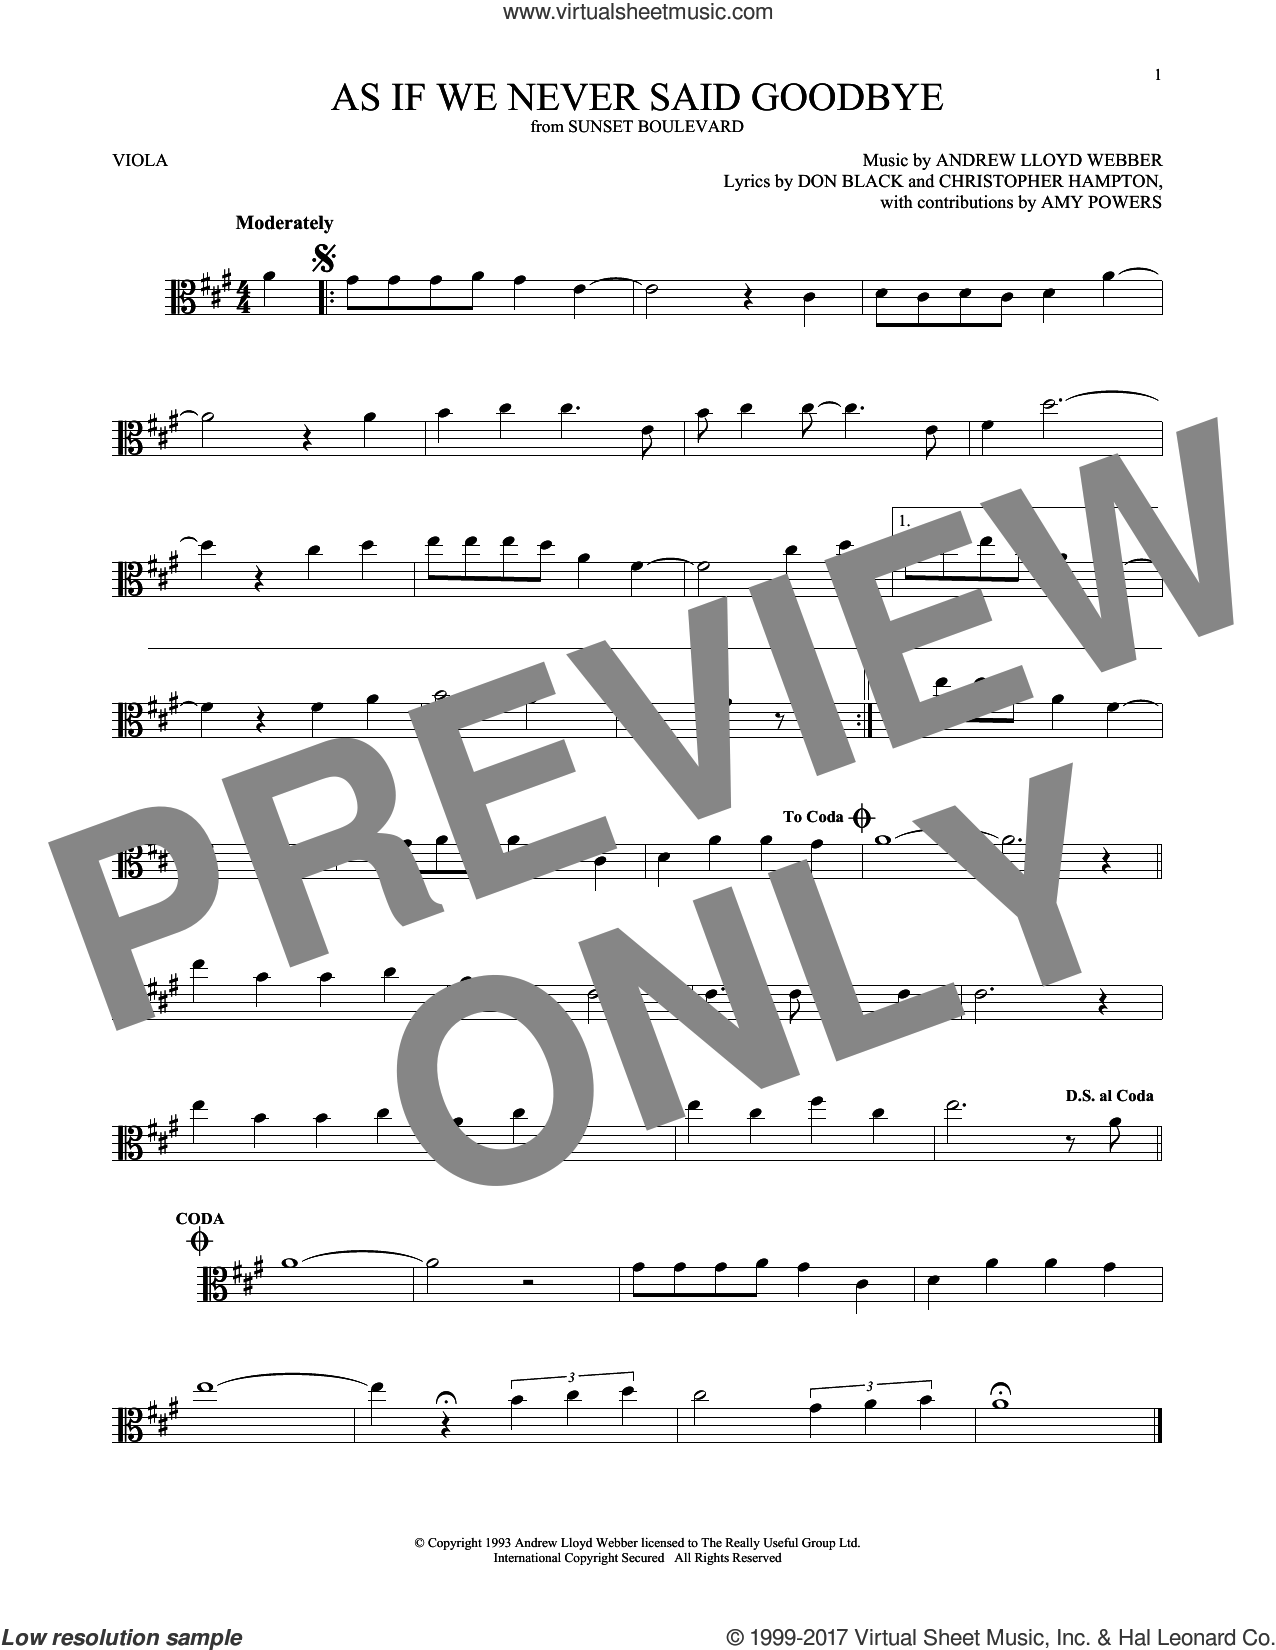 As If We Never Said Goodbye sheet music for viola solo by Andrew Lloyd Webber, Christopher Hampton and Don Black, intermediate skill level